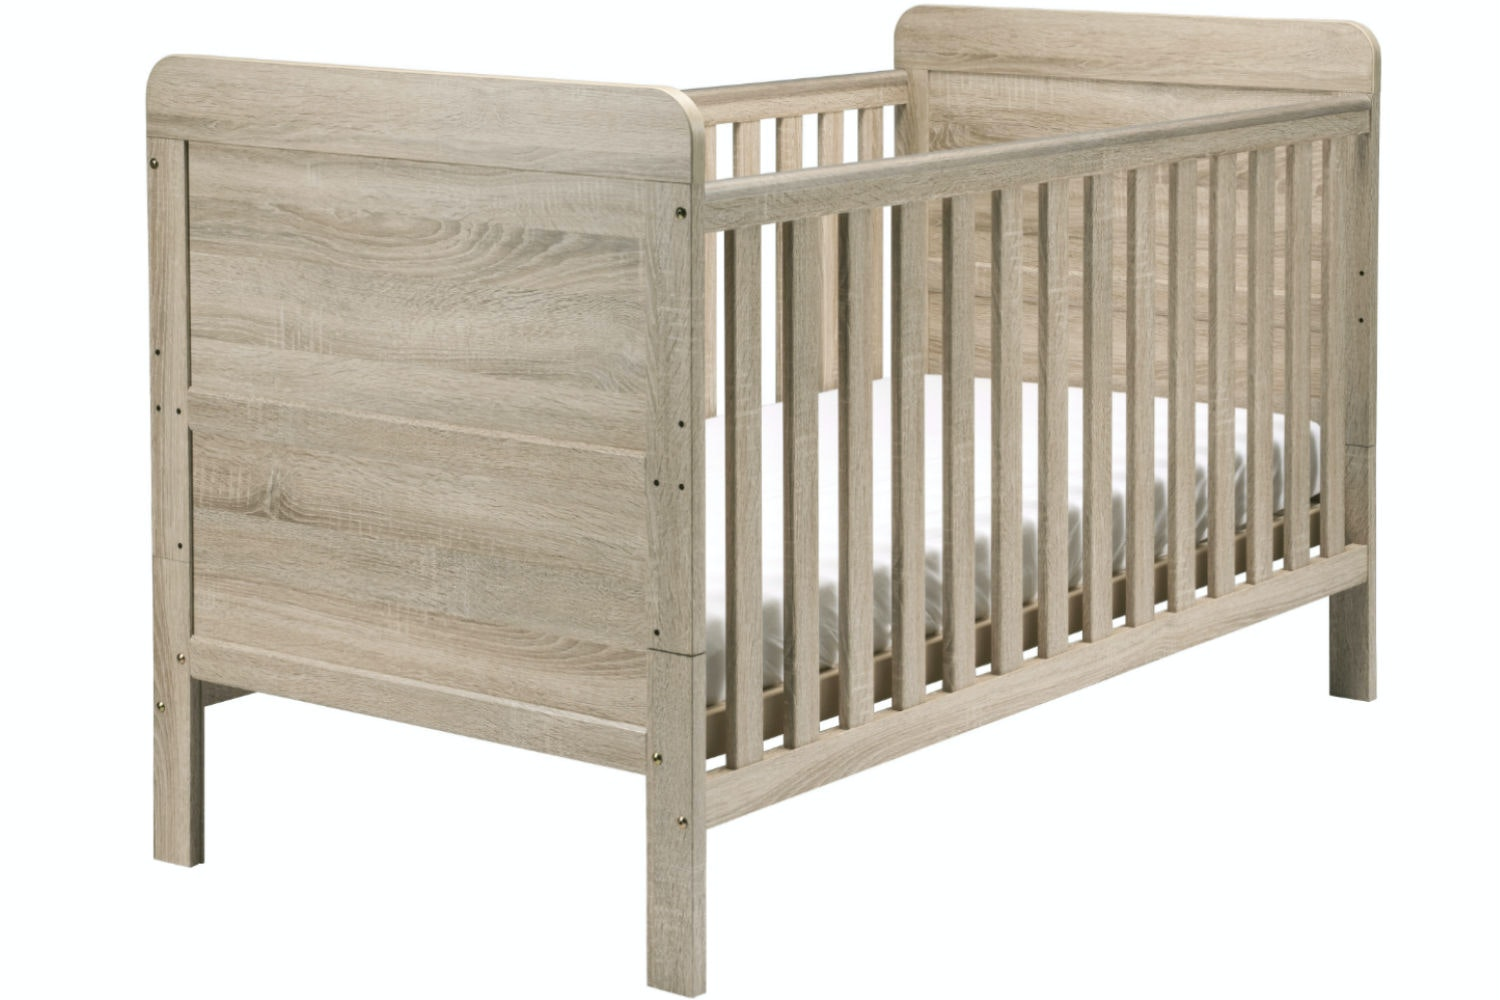 Fontana 2 in 1 Cot Bed | Sonoma Oak